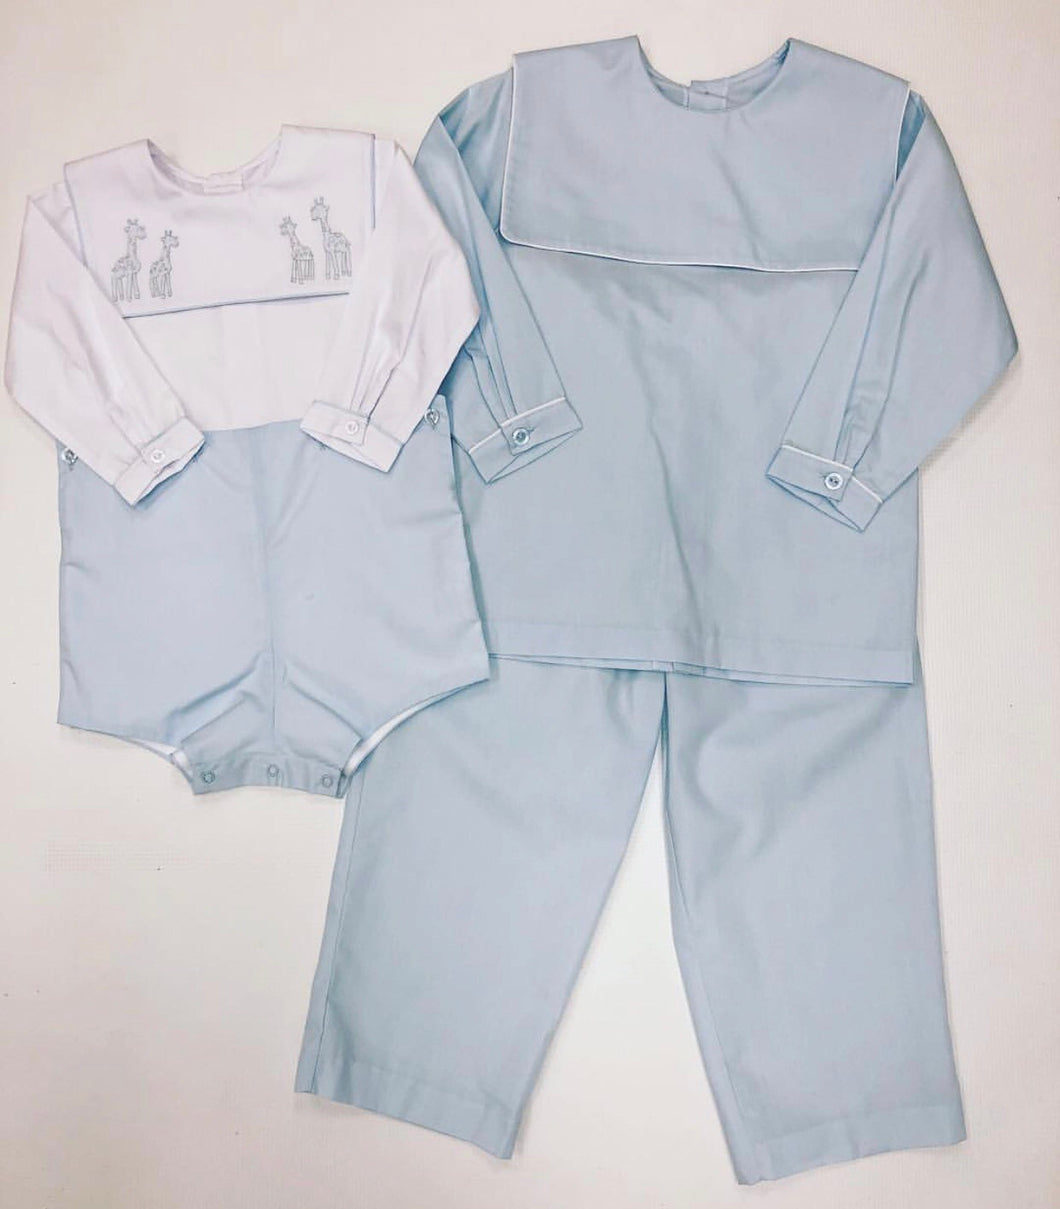 Blue/White Blank Pant Set